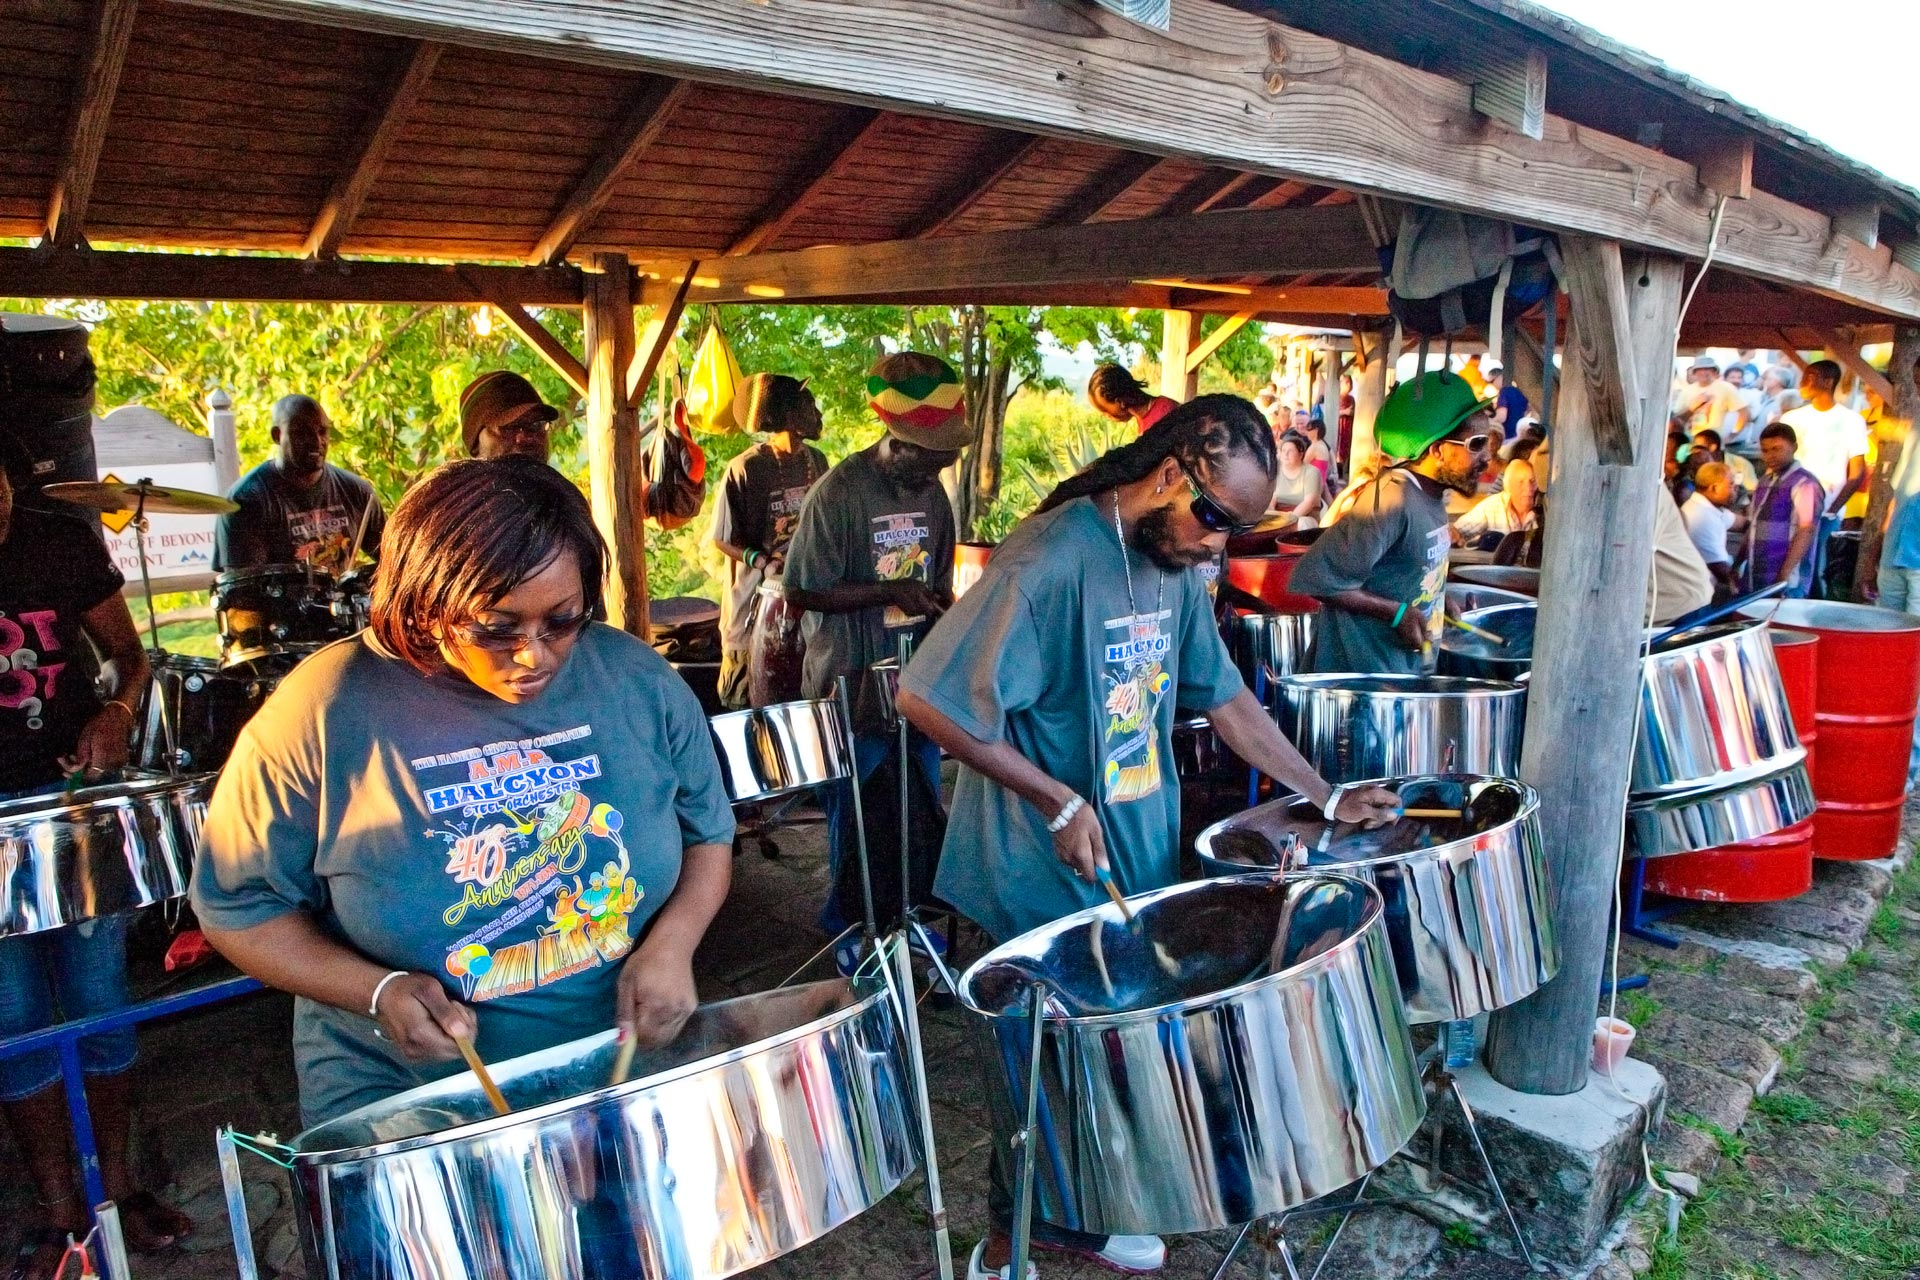 A group playing steel drums